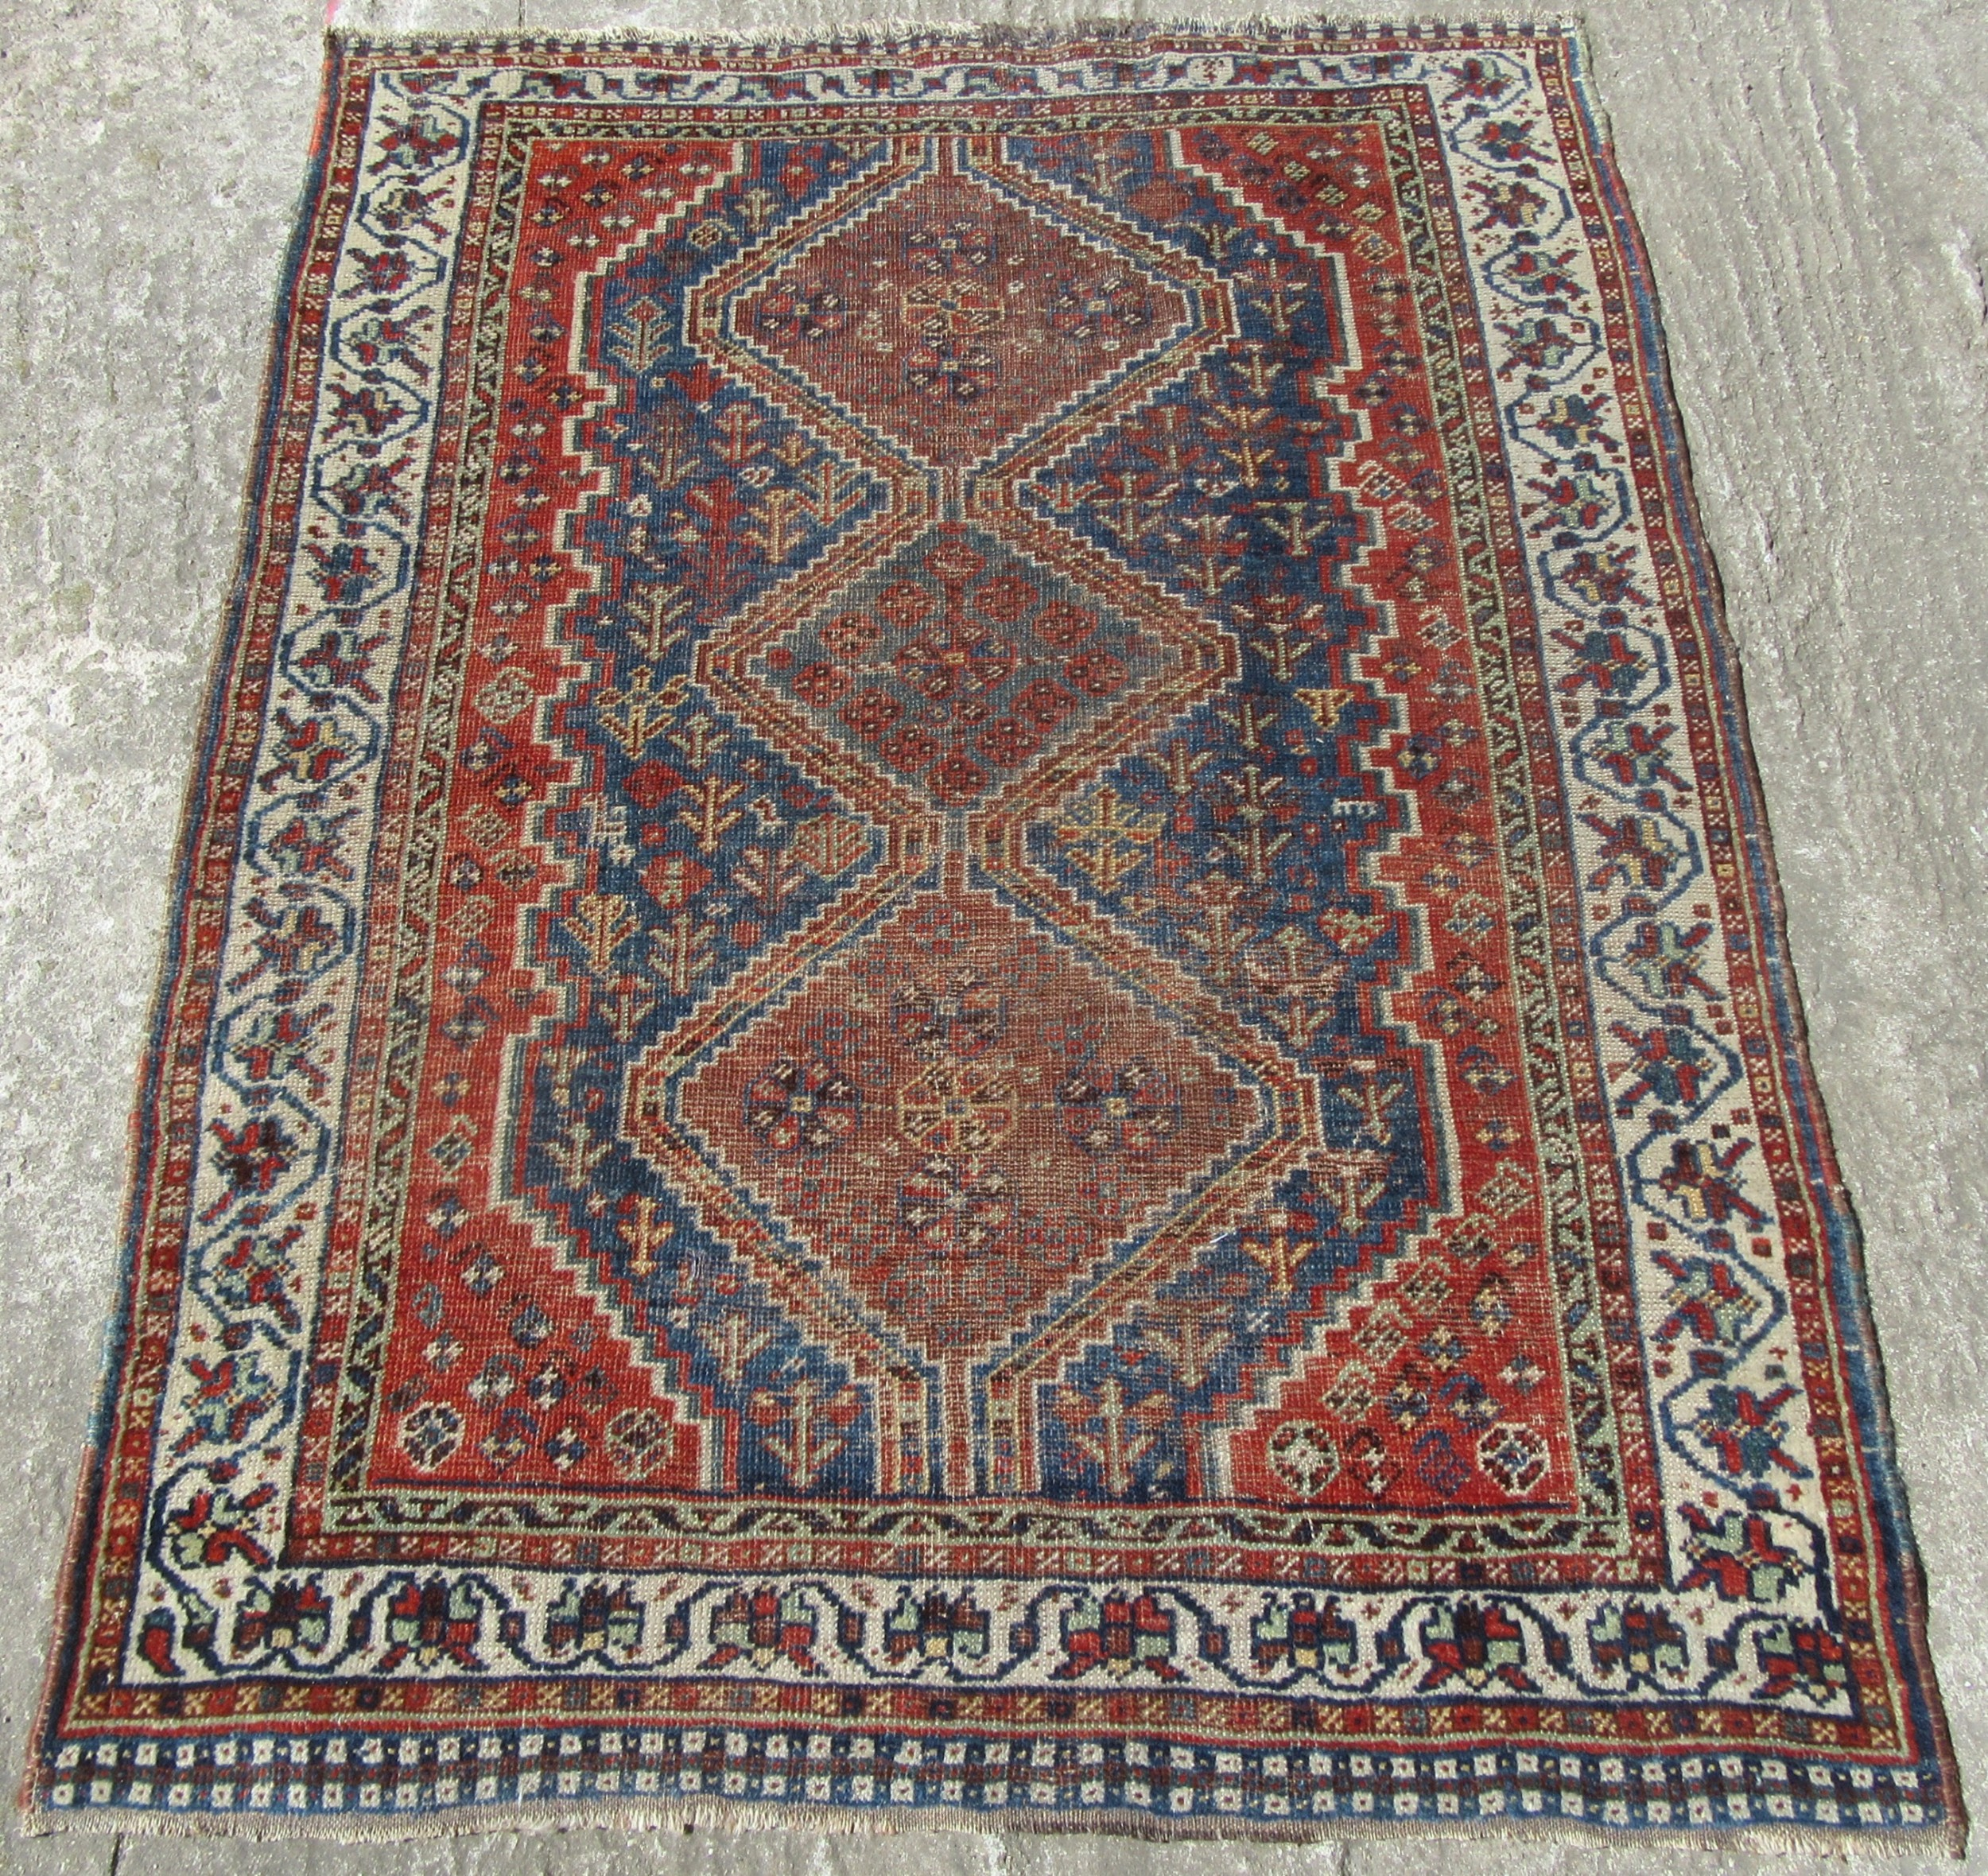 antique country house shabby chic persian khamseh rug lone animal figure in mid blue ground